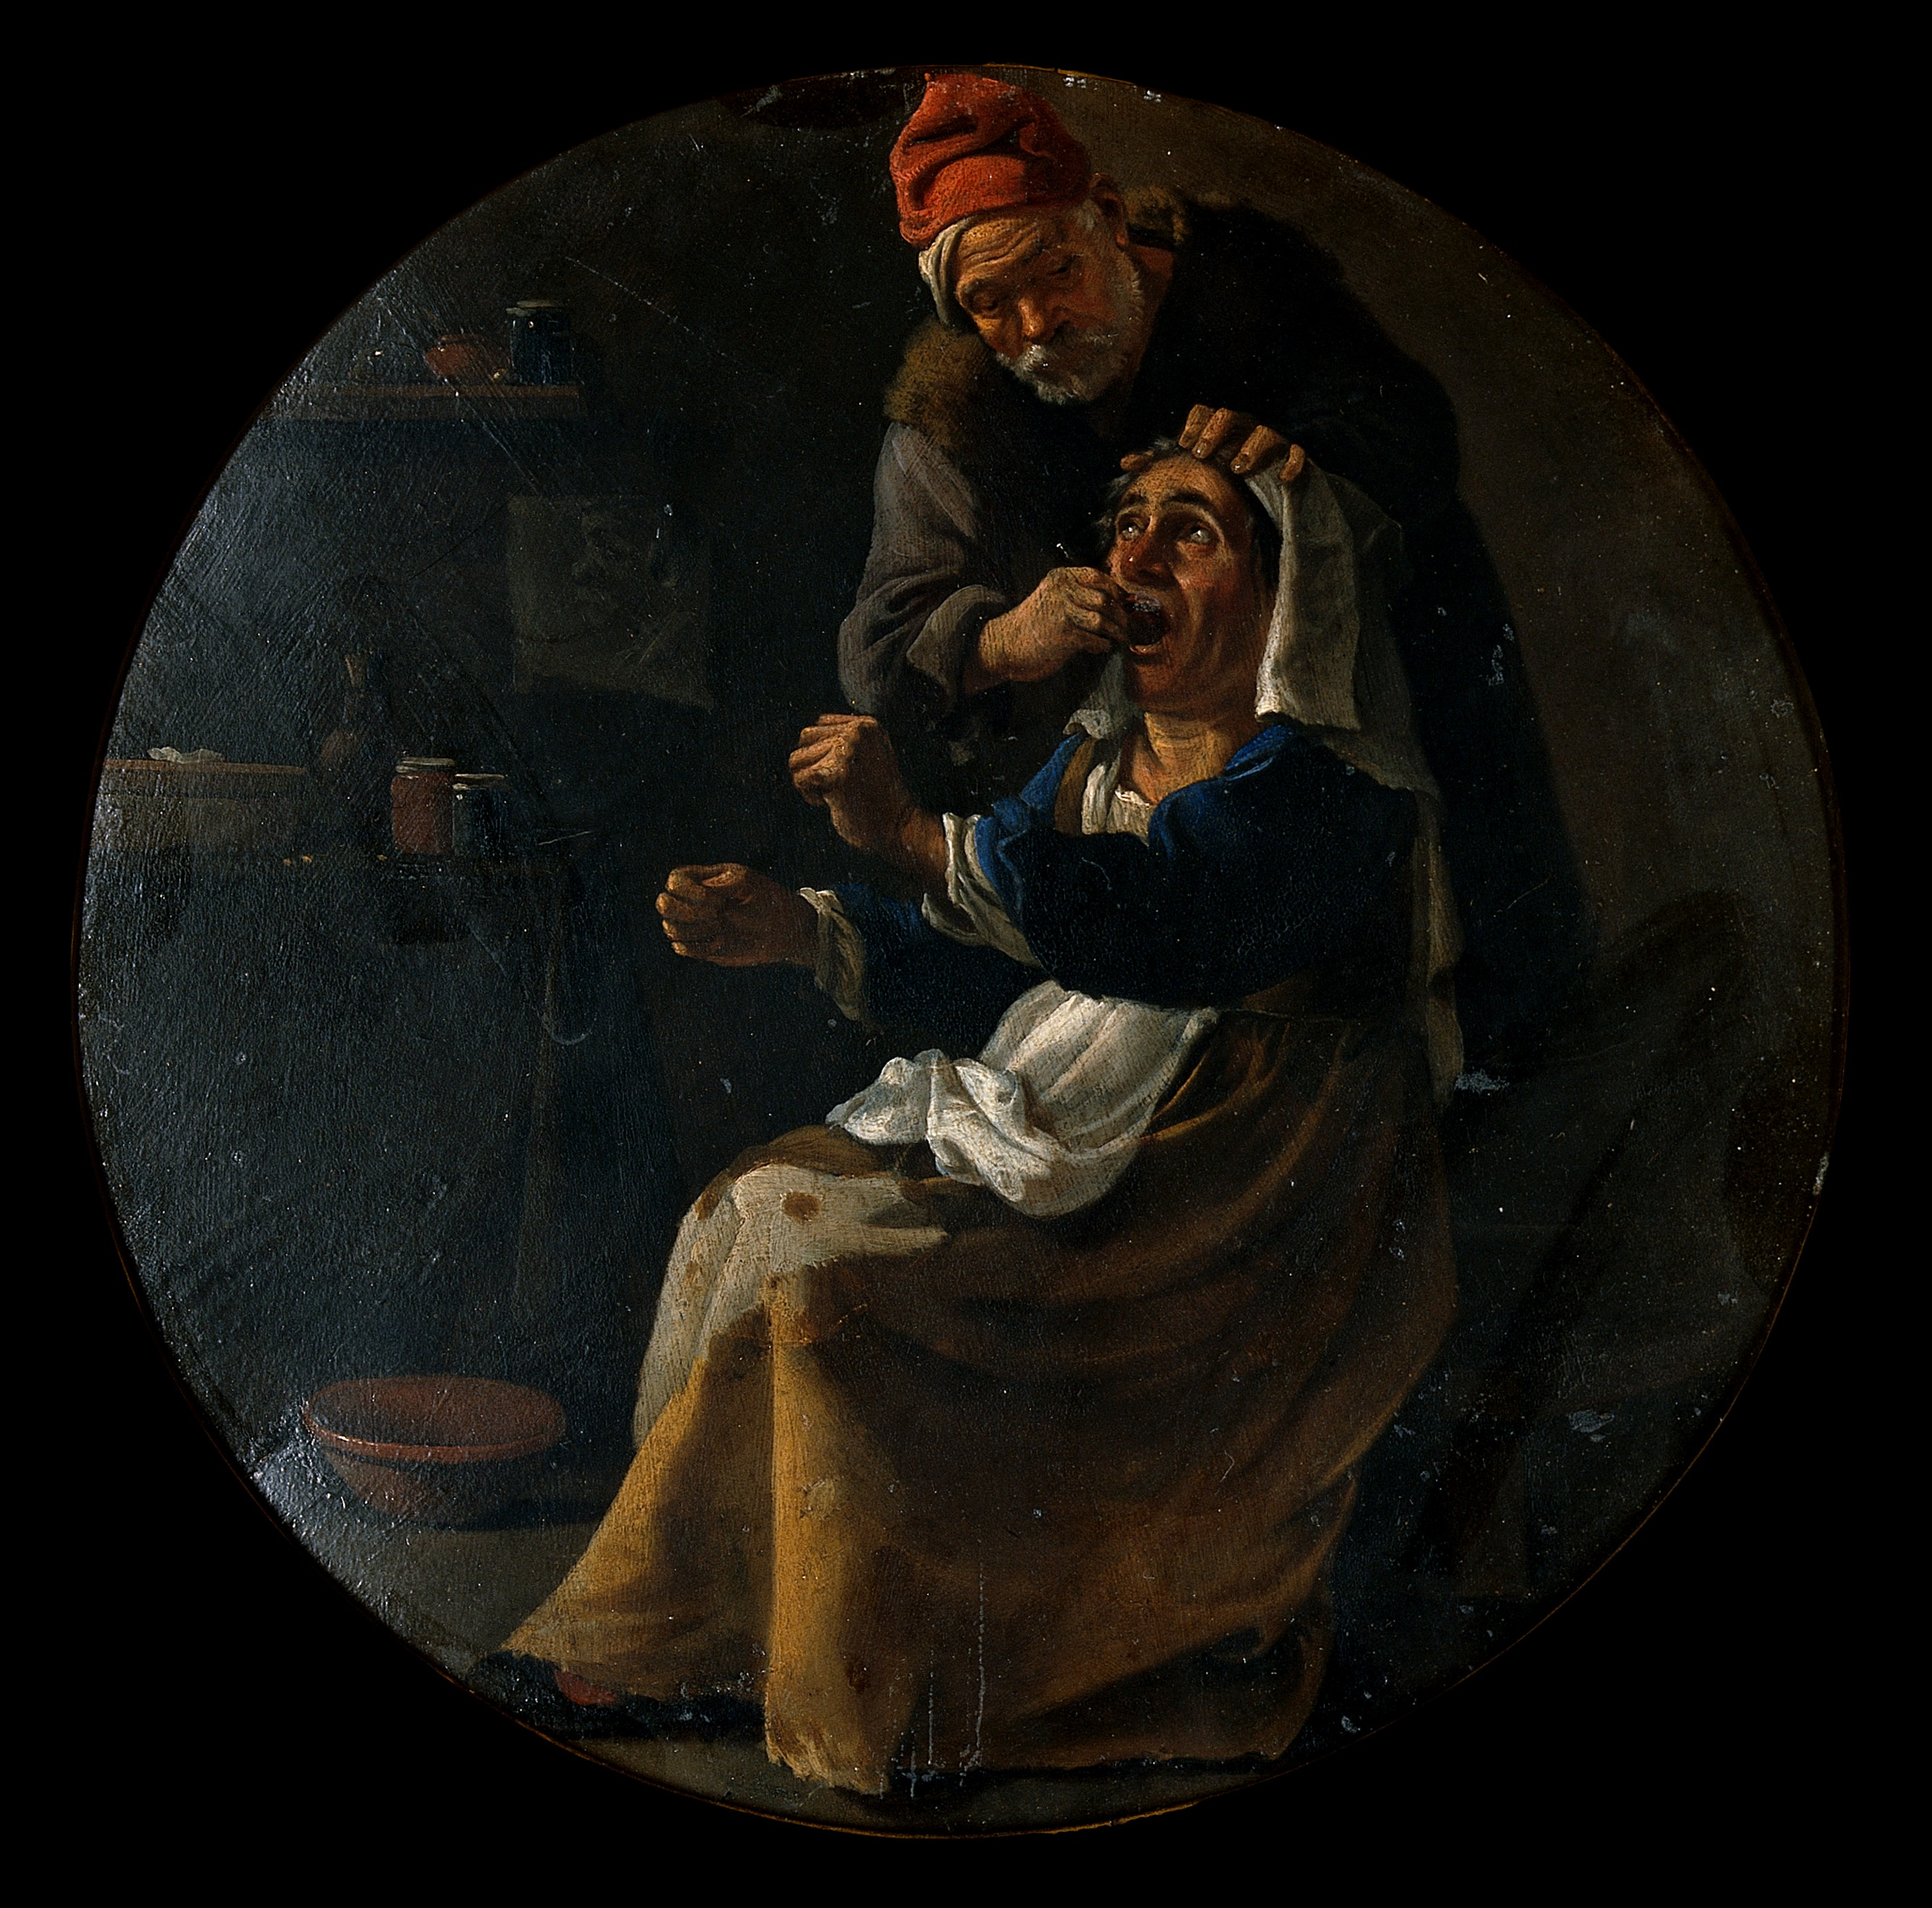 File:A man extracting a tooth  Oil painting by Pieter van